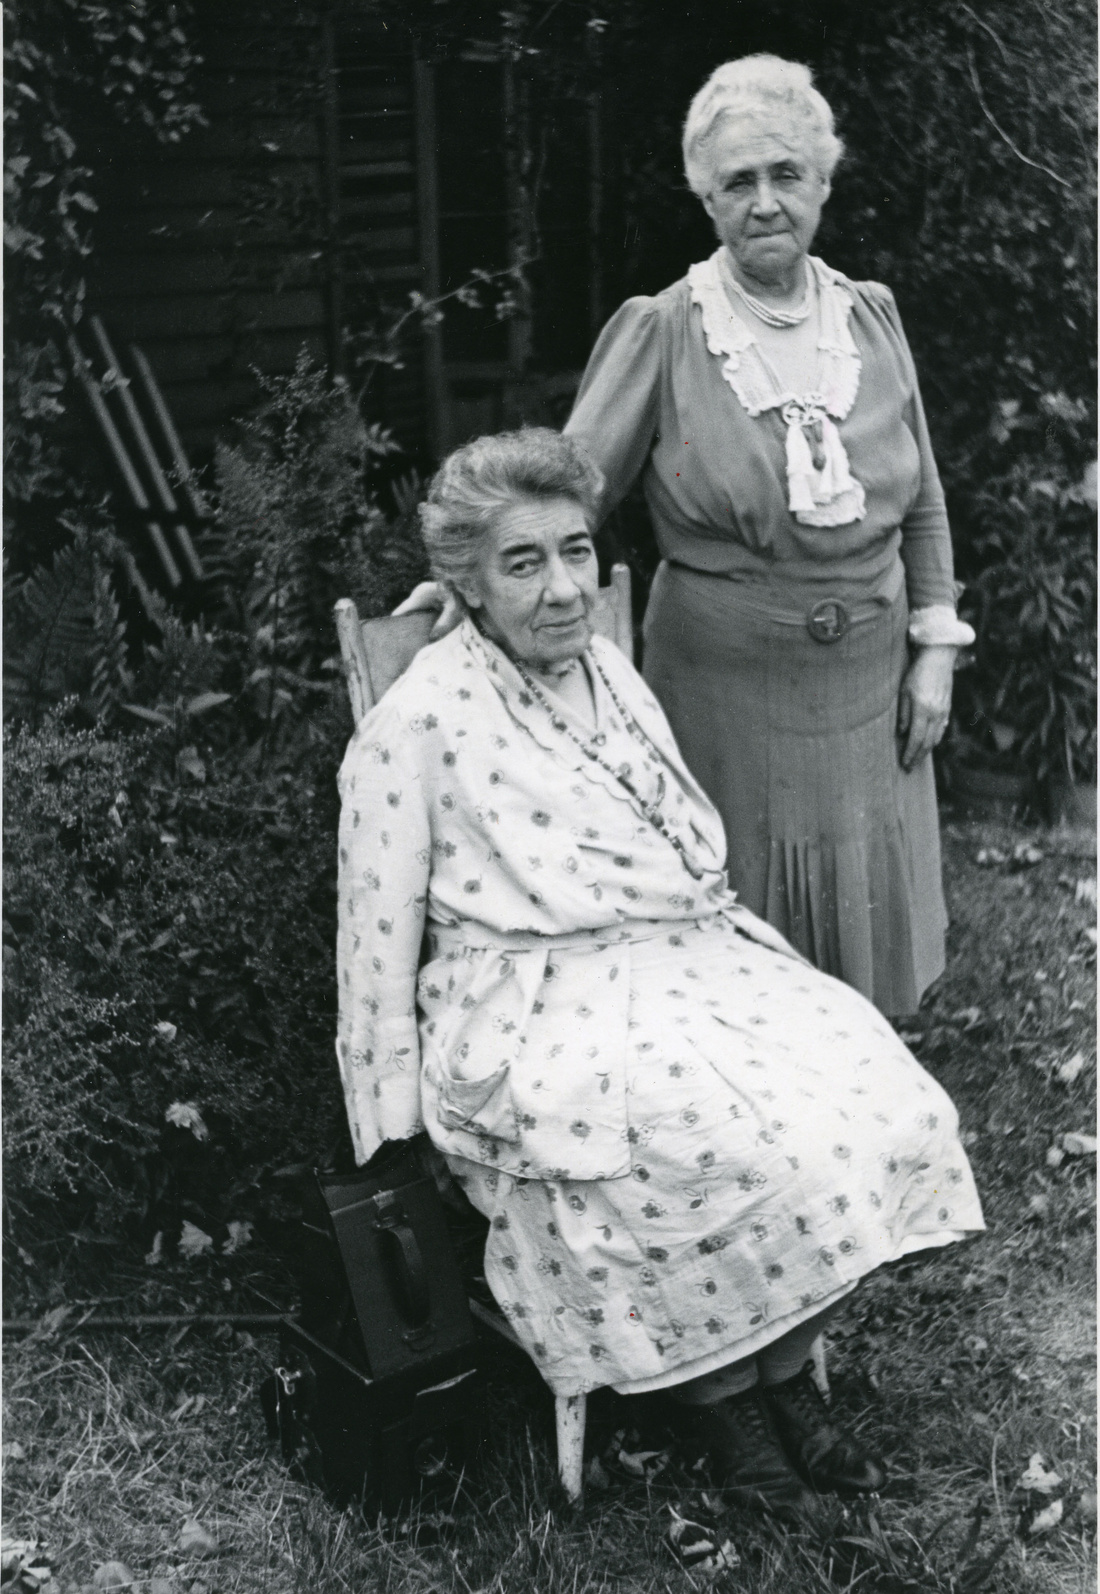 Richard O'Cannon, Alice Austen seated with Gertrude Tate, September 1944. Courtesy of Alice Austen House.